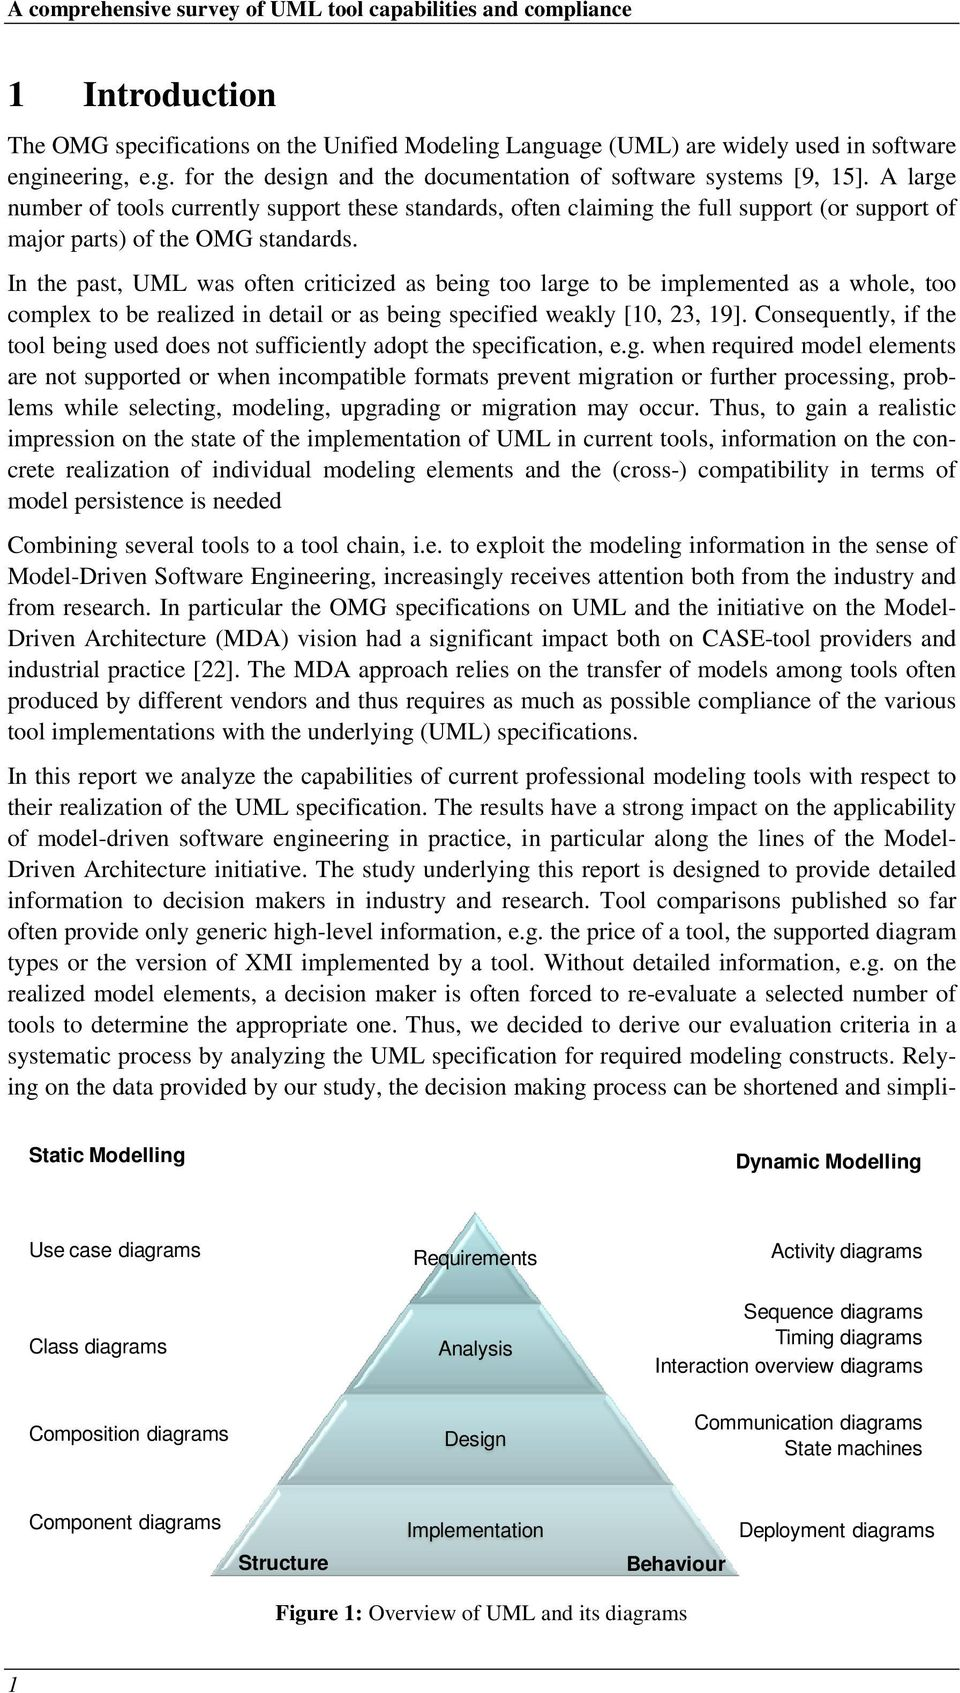 Analysis Of Uml Tools Their Capabilities And Compliance Pdf Additionally State Machine Diagram On Tool Diagrams In The Past Was Often Criticized As Being Too Large To Be Implemented